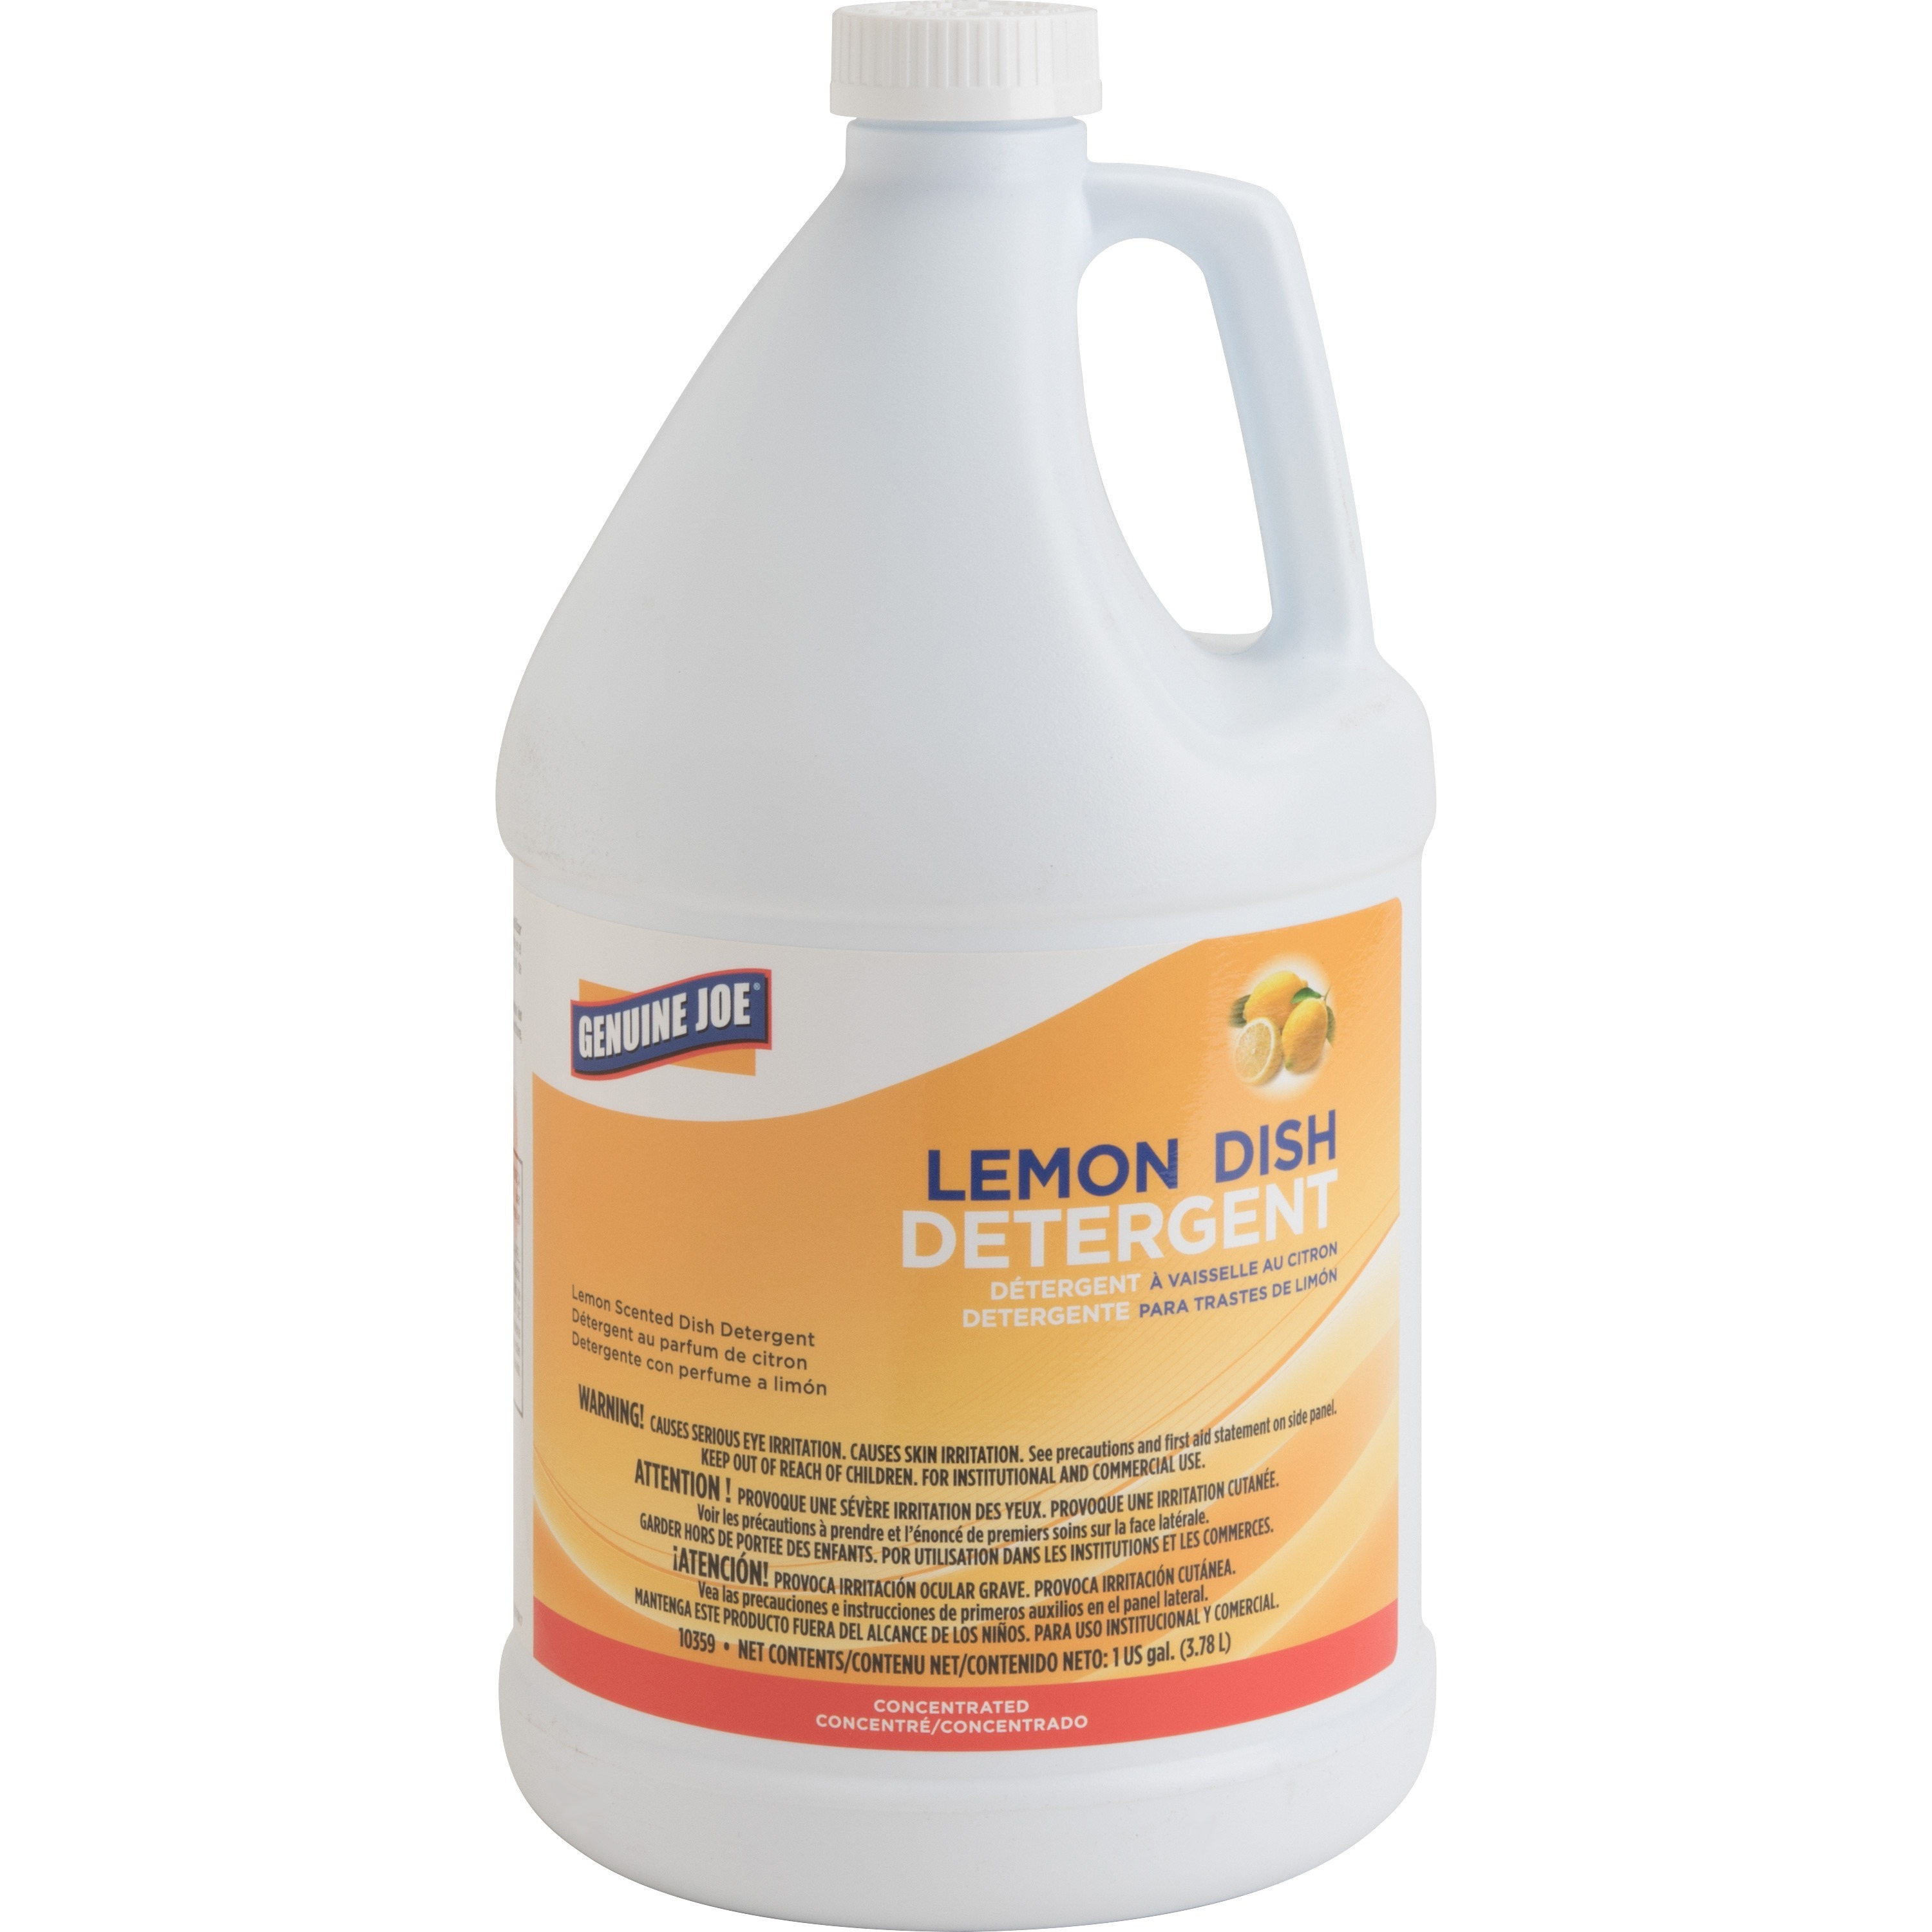 Genuine Joe, GJO10359CT, Lemon Dish Detergent Gallon, 4 / Carton, White